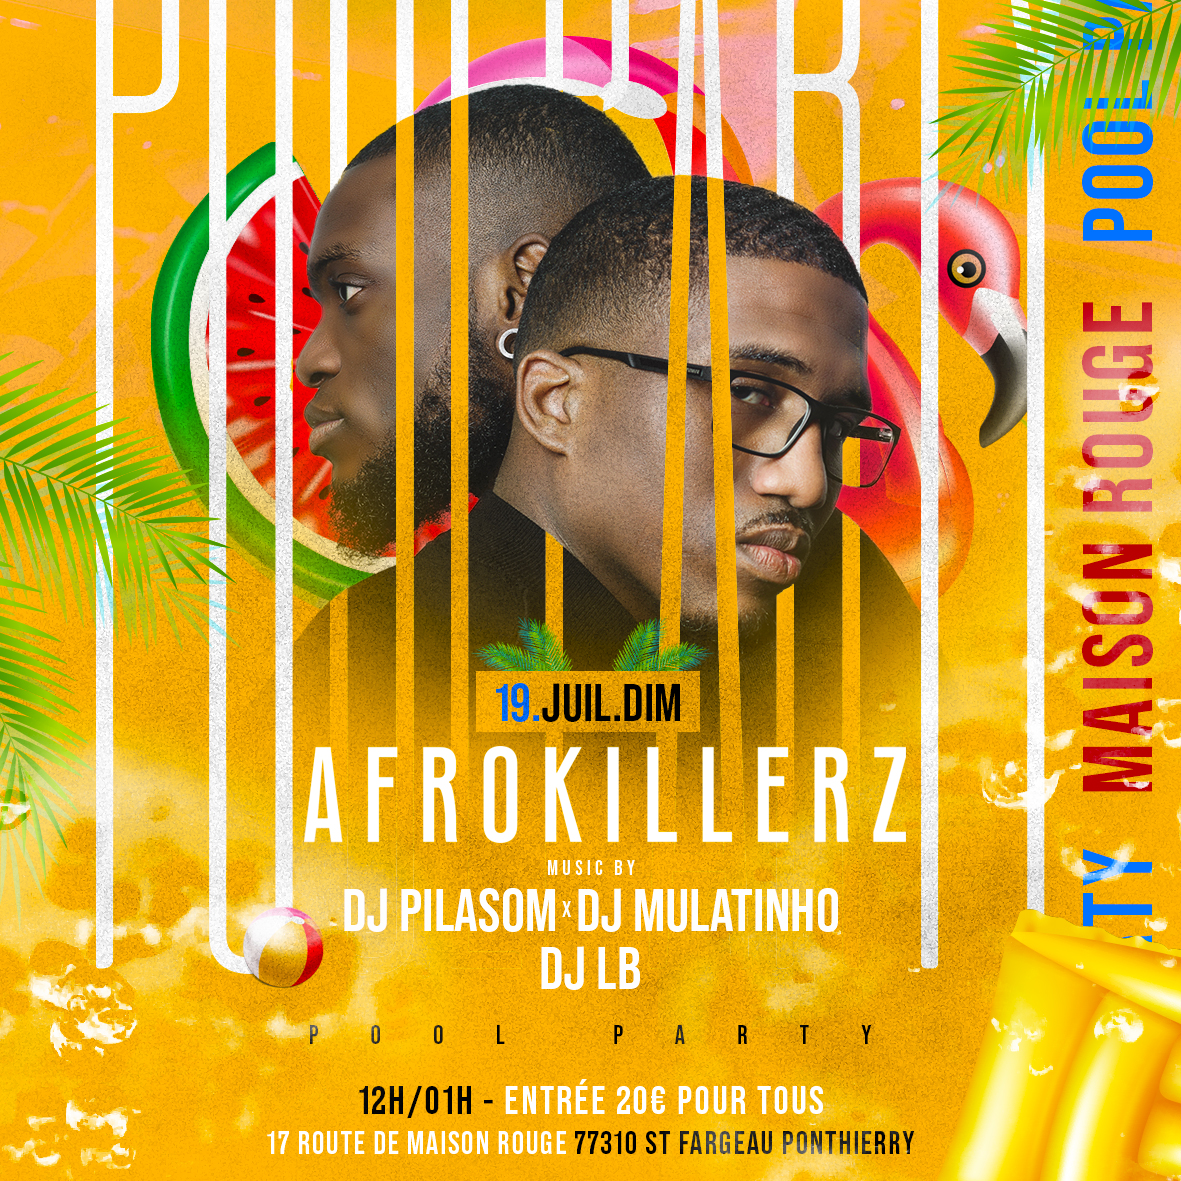 AFROKILLERZ POOL PARTY